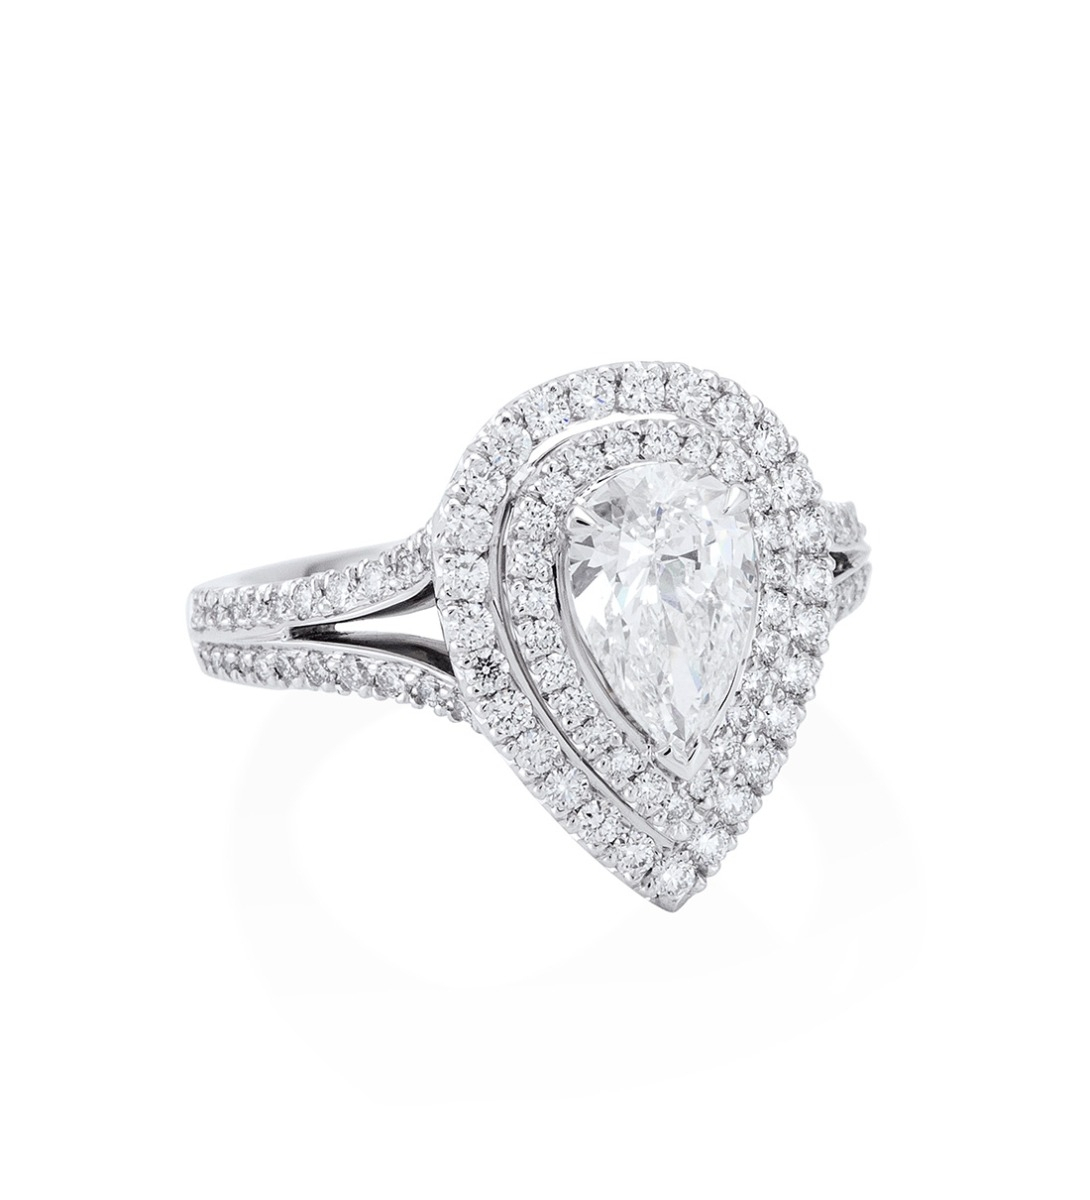 Double Vintage Pear Cut Diamond Ring With Split Shoulders | Boodles In Most Recent Classic Teardrop Halo Rings (Gallery 12 of 25)